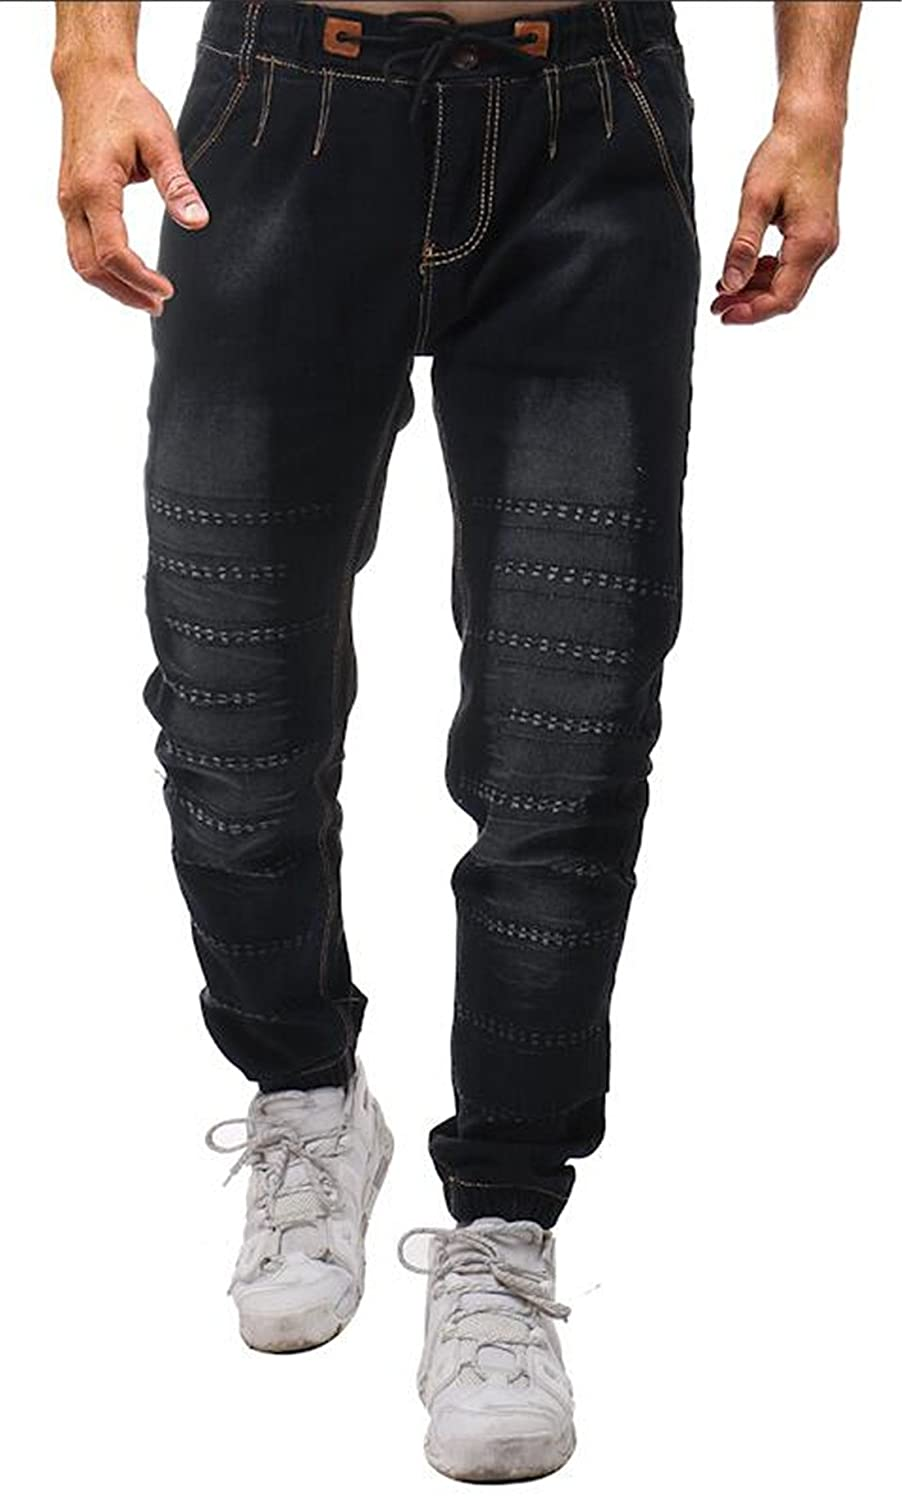 Pivaconis Mens Fashion Ripped Jeans Distressed Holes Denim Pants Trousers